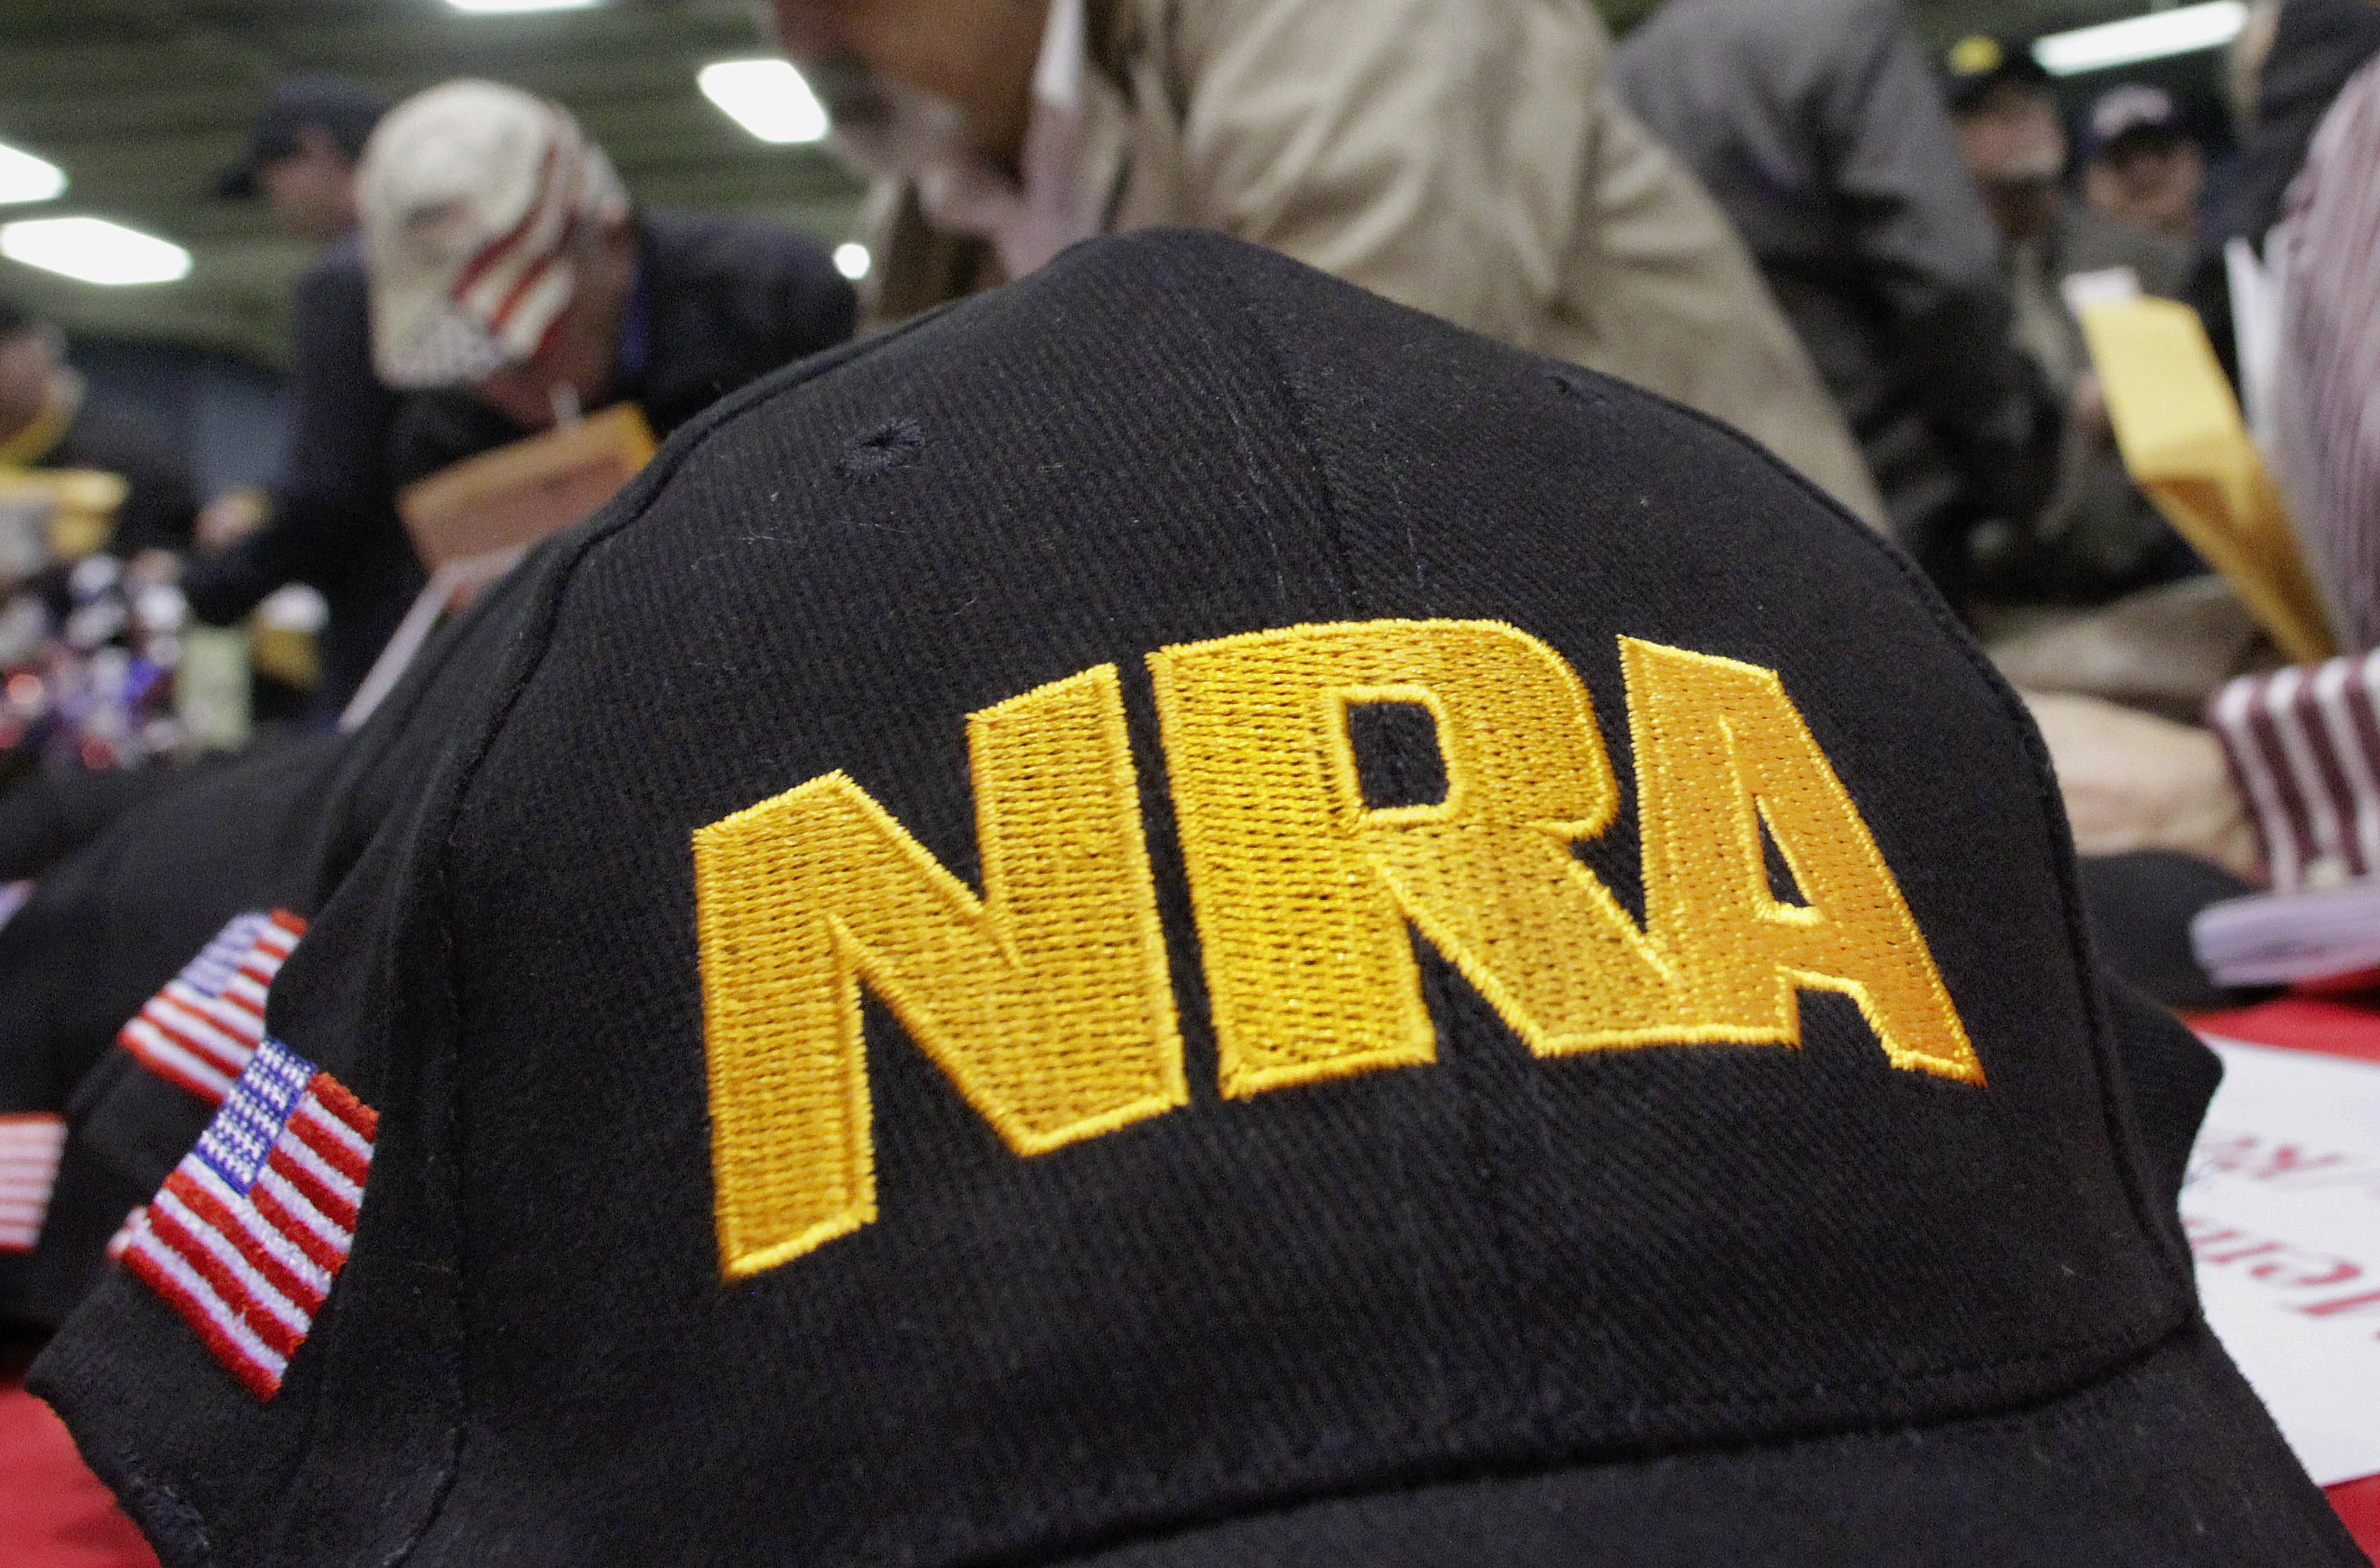 NRA declares victory in legal battle against San Francisco